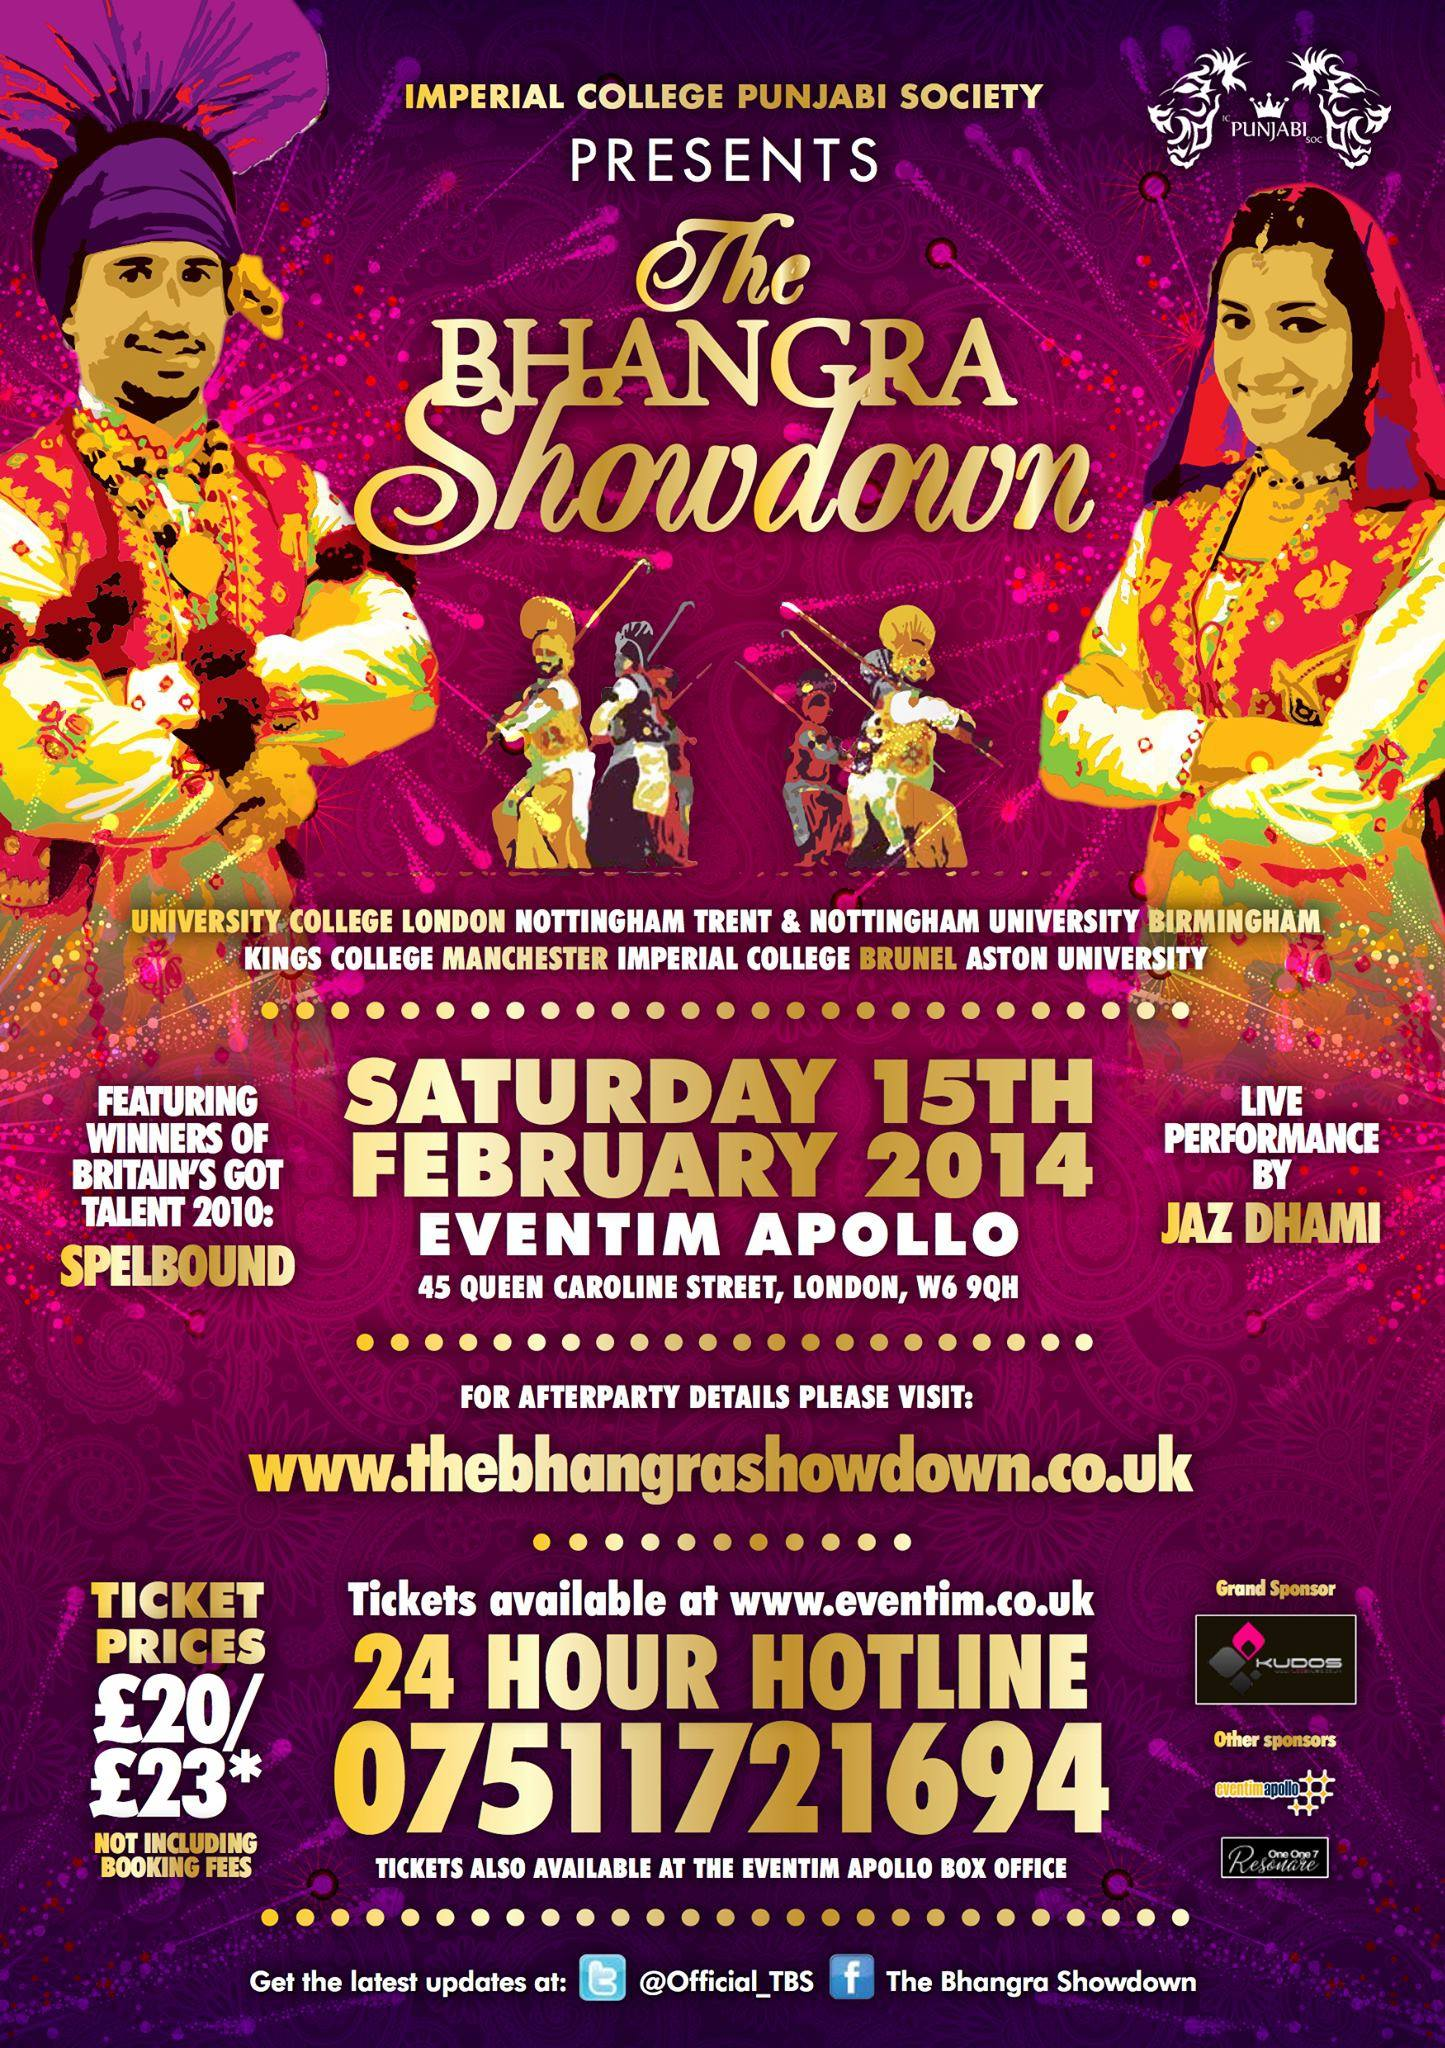 The Great Hype Surrounding The Bhangra Showdown 2014